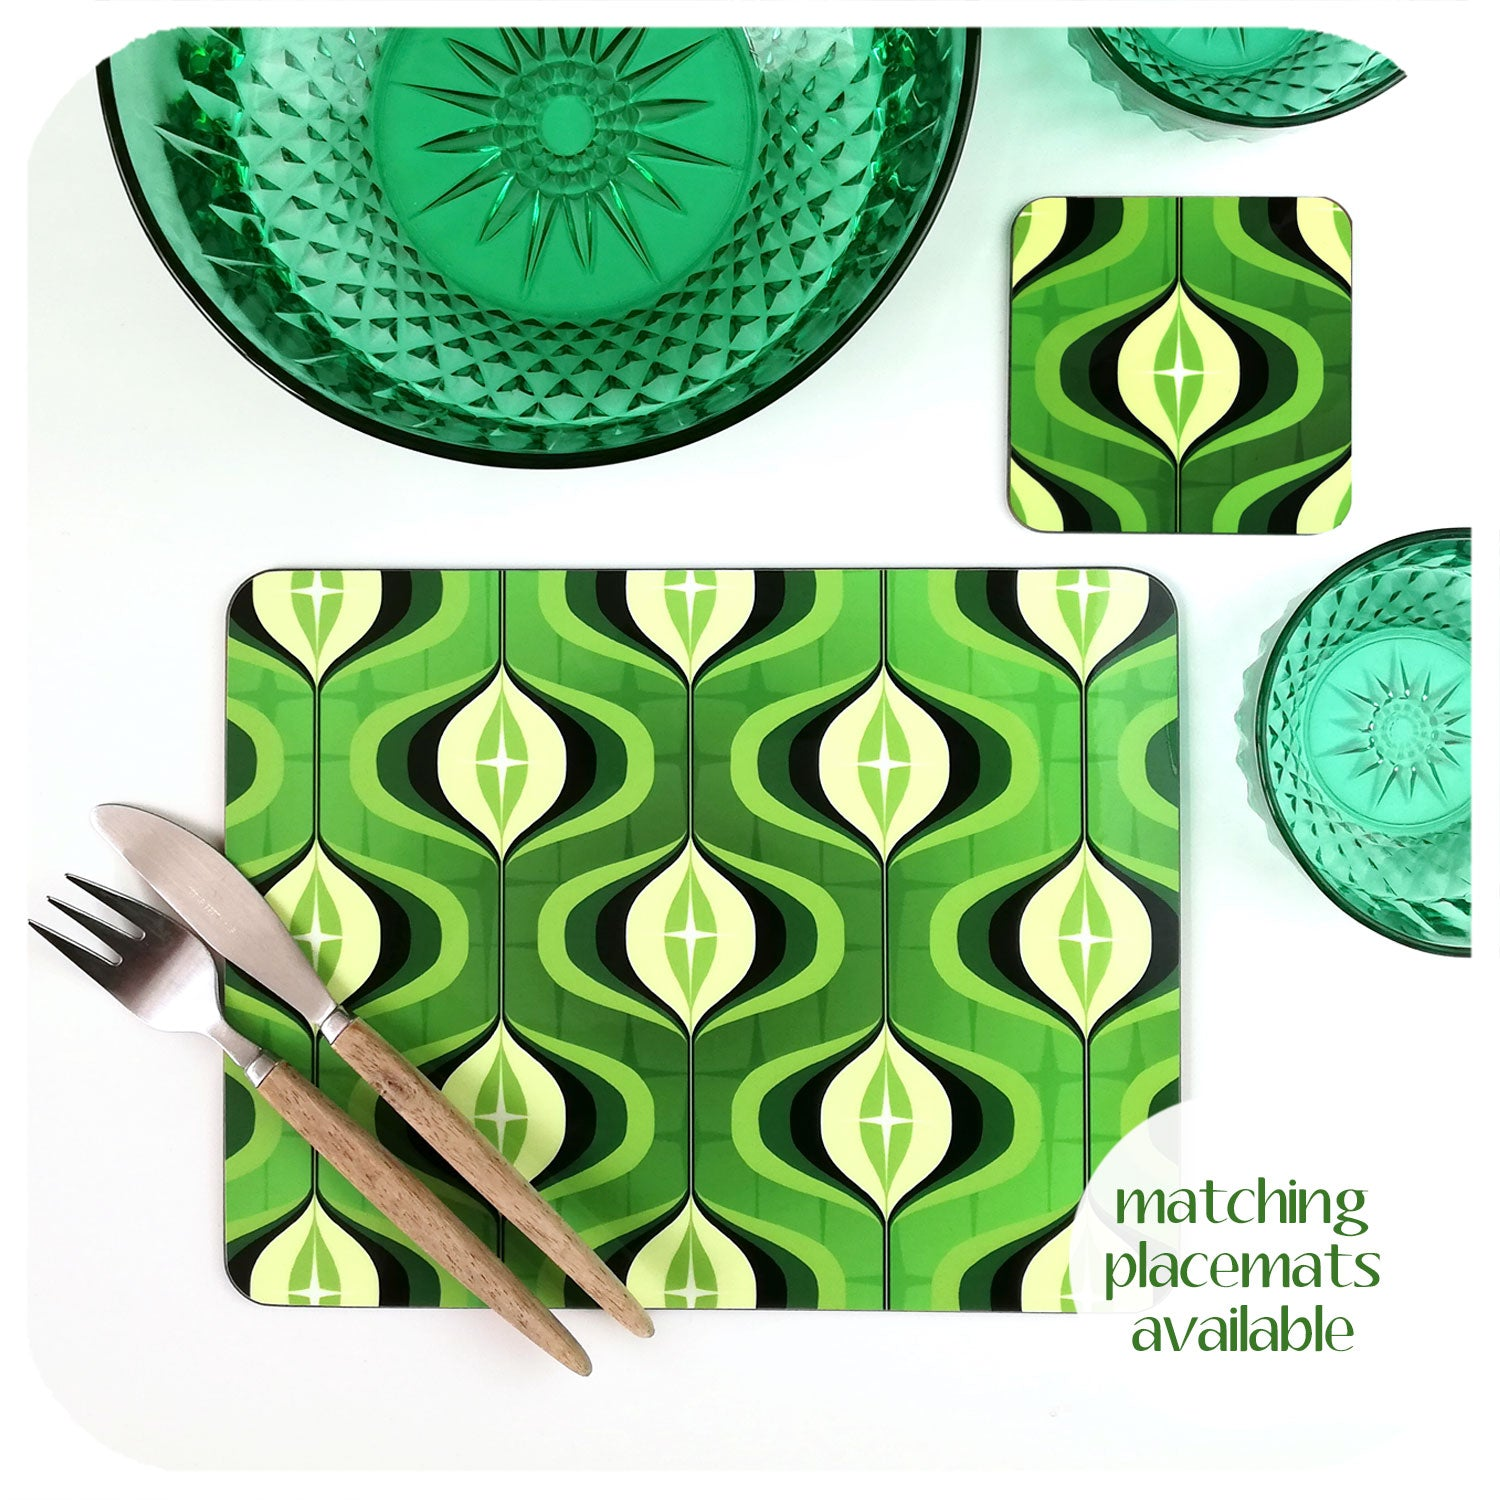 Green 70s Op Art placemats available | The Inkabilly Emporium